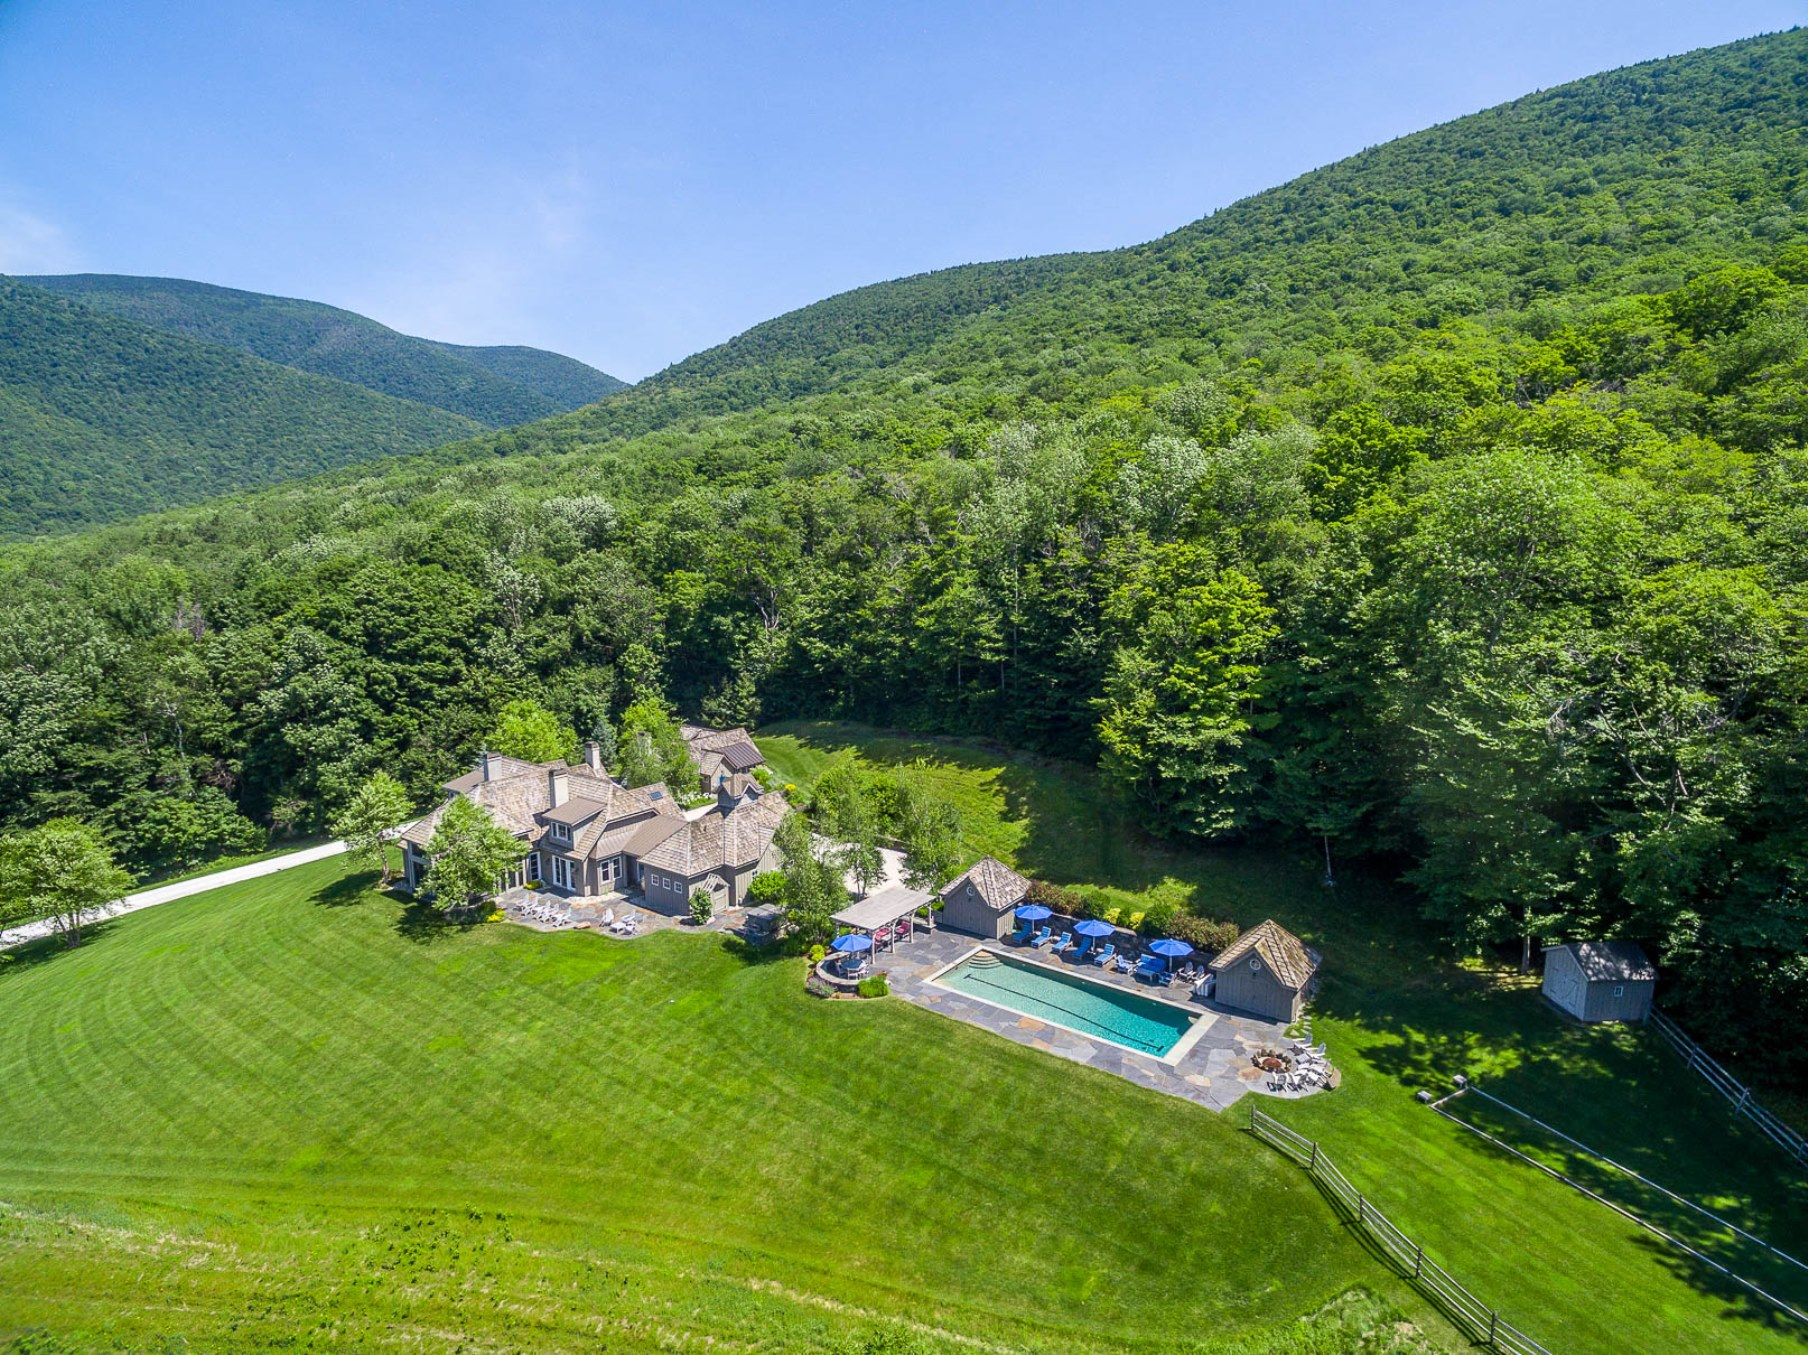 Casa Unifamiliar por un Venta en Top Of The World Views 190 Turkey Run Ln Dorset, Vermont, 05251 Estados Unidos